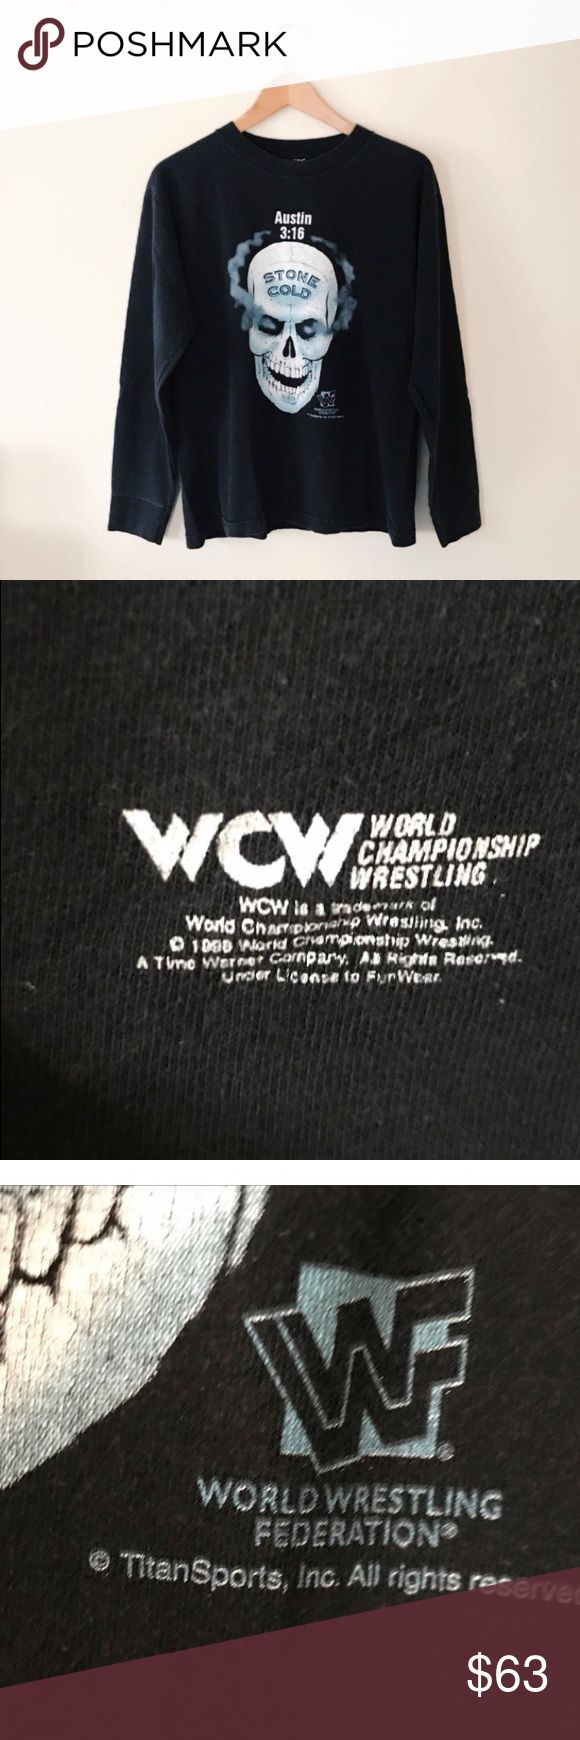 Vintage stone cold shirt Great vintage condition 90's WWF long sleeve! Size medium, it would fit small-medium. So sad to let this amazing rare shirt go but money for school is more important 😒 great shirt to even collect. As a wrestling fan it's really hard to come by long sleeve vintage wrestling shirts especially in this size and condition! For men or women 💘 WWE Tops Tees - Long Sleeve